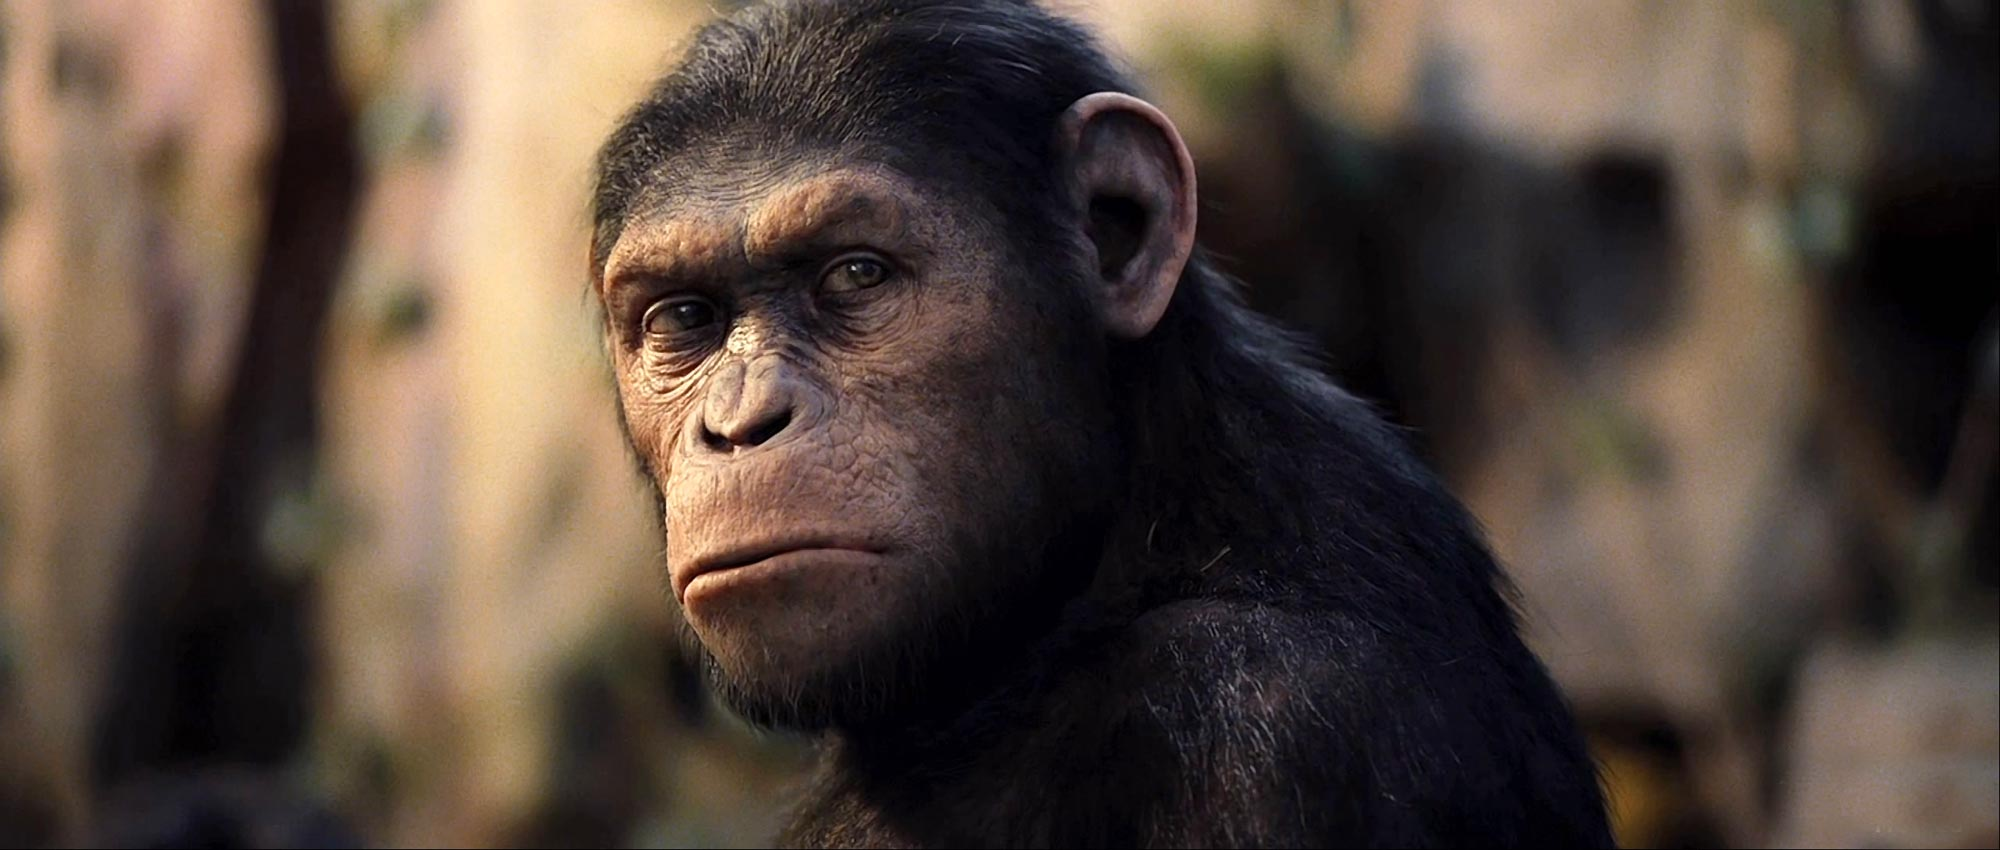 New War for the Planet of the Apes Featurette is Out!